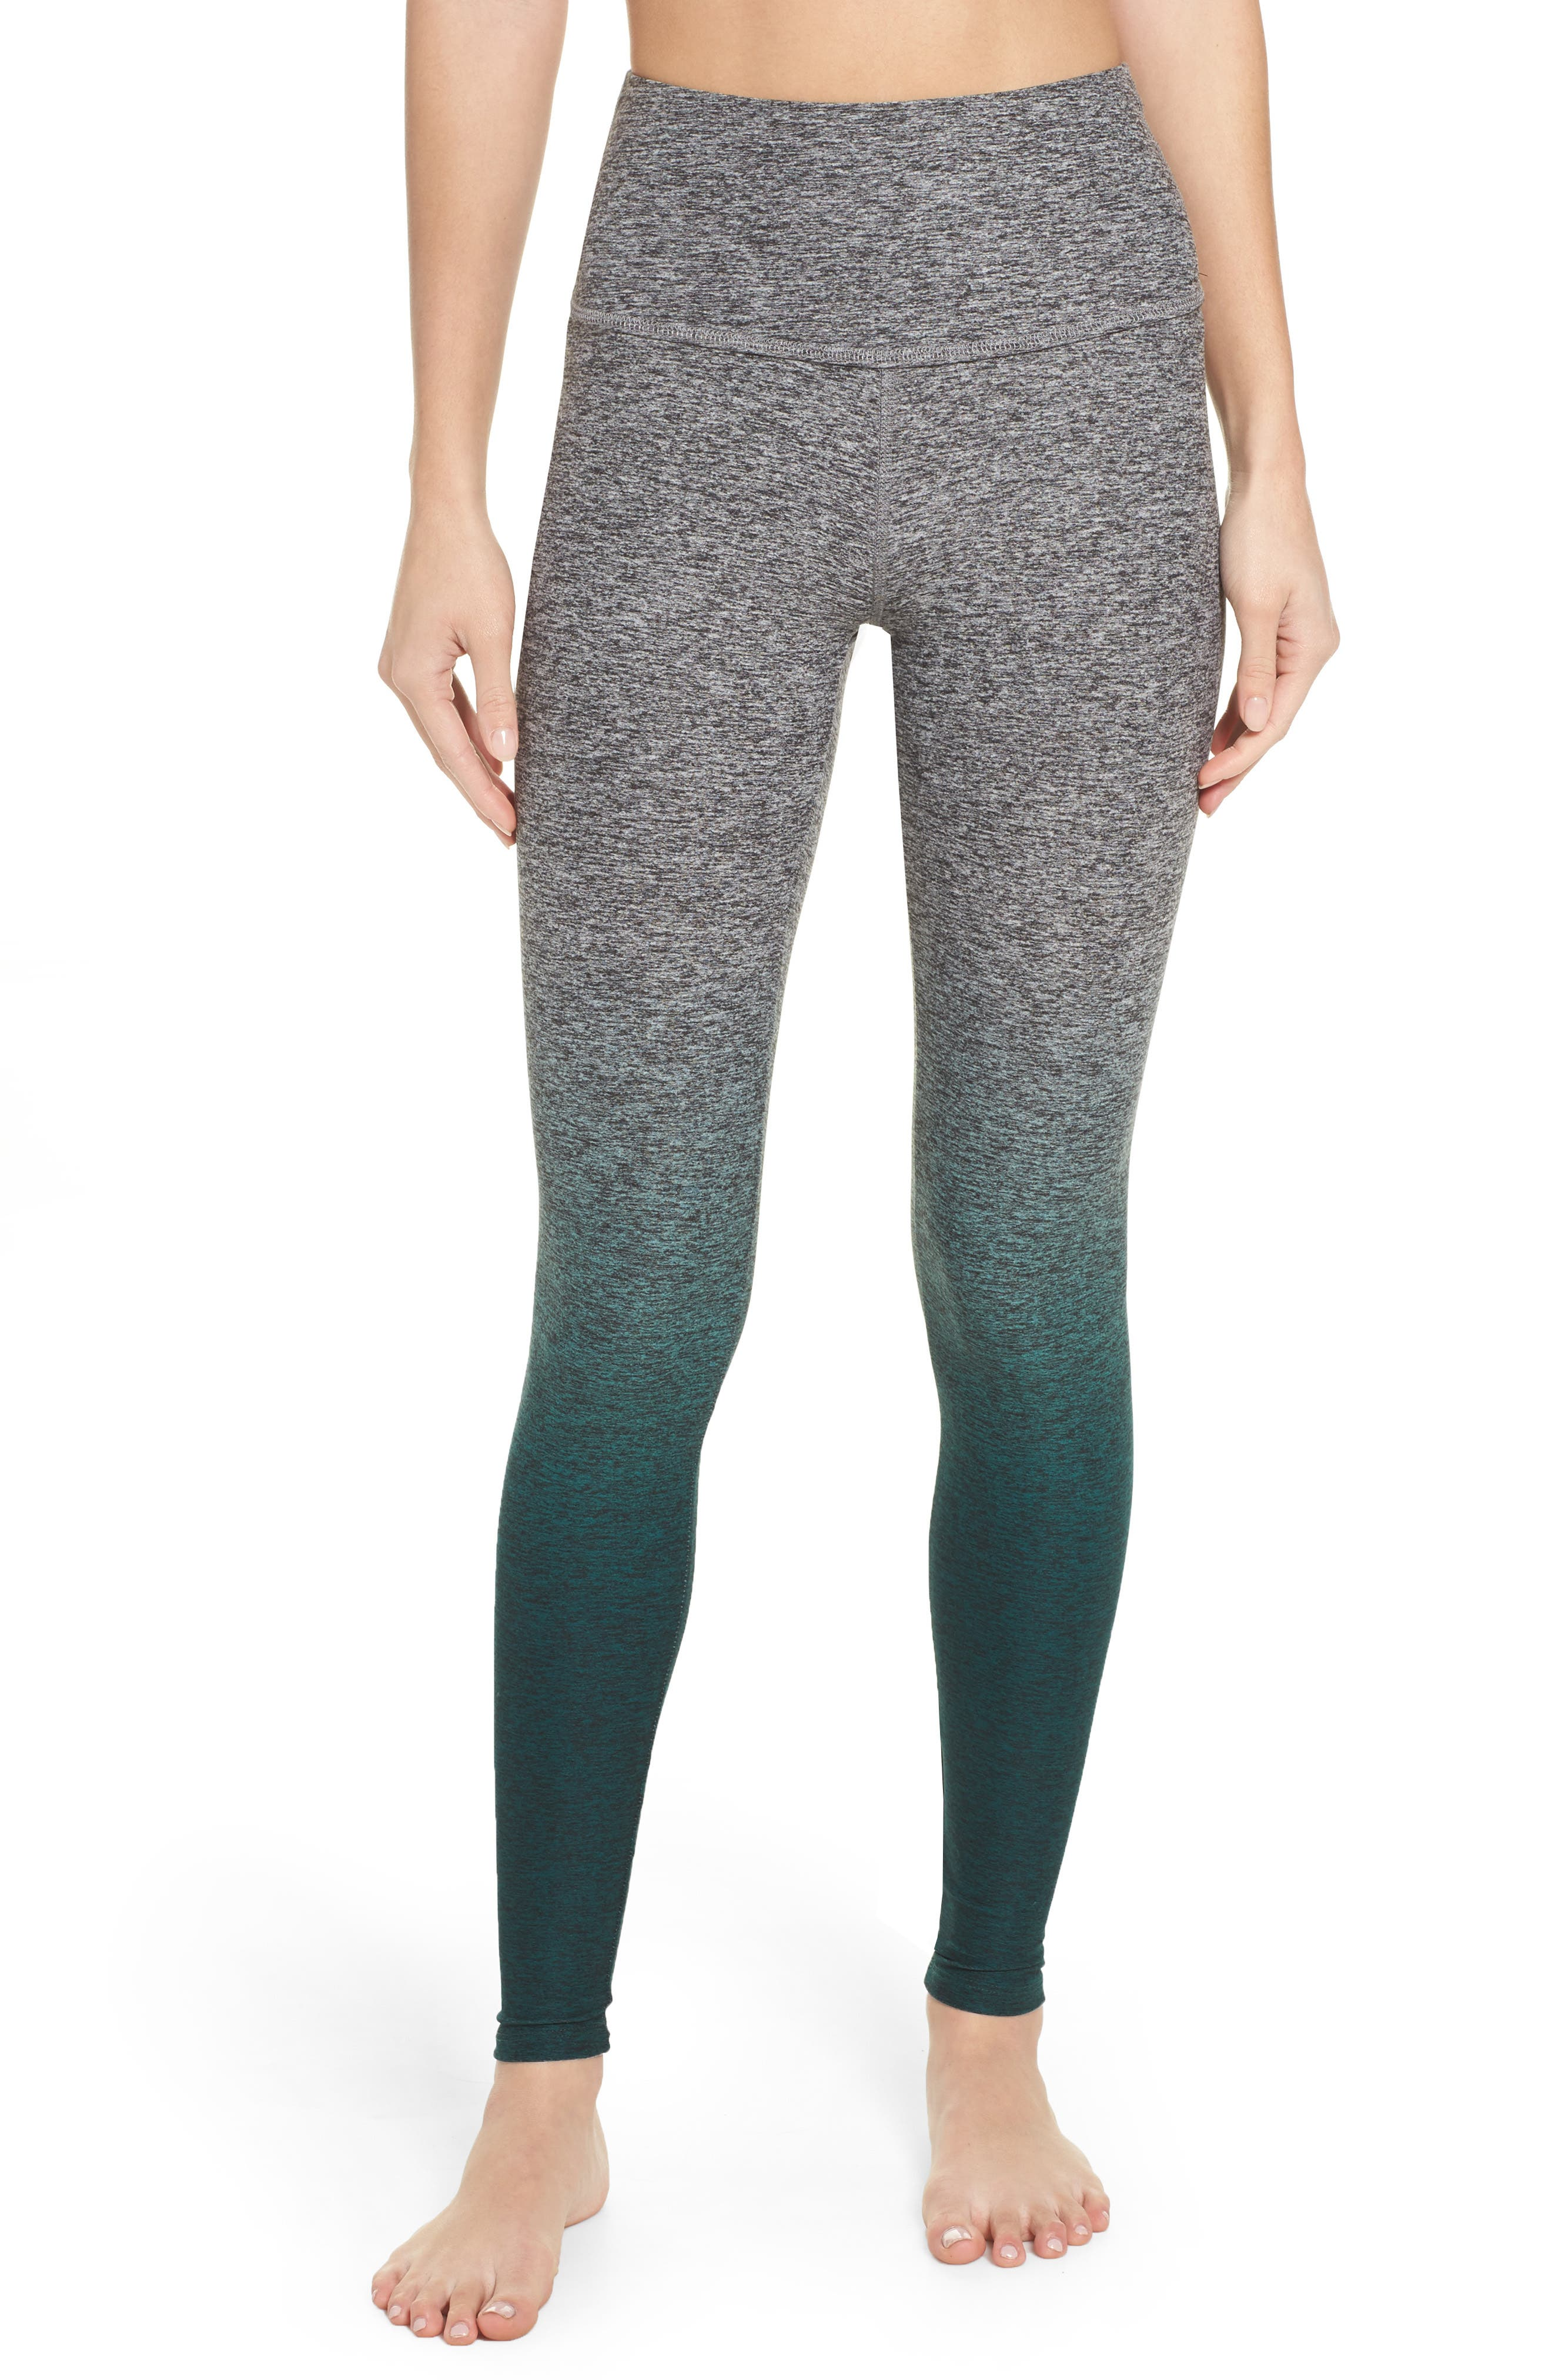 Alternate Image 1 Selected - Beyond Yoga Space Dye High Waist Leggings